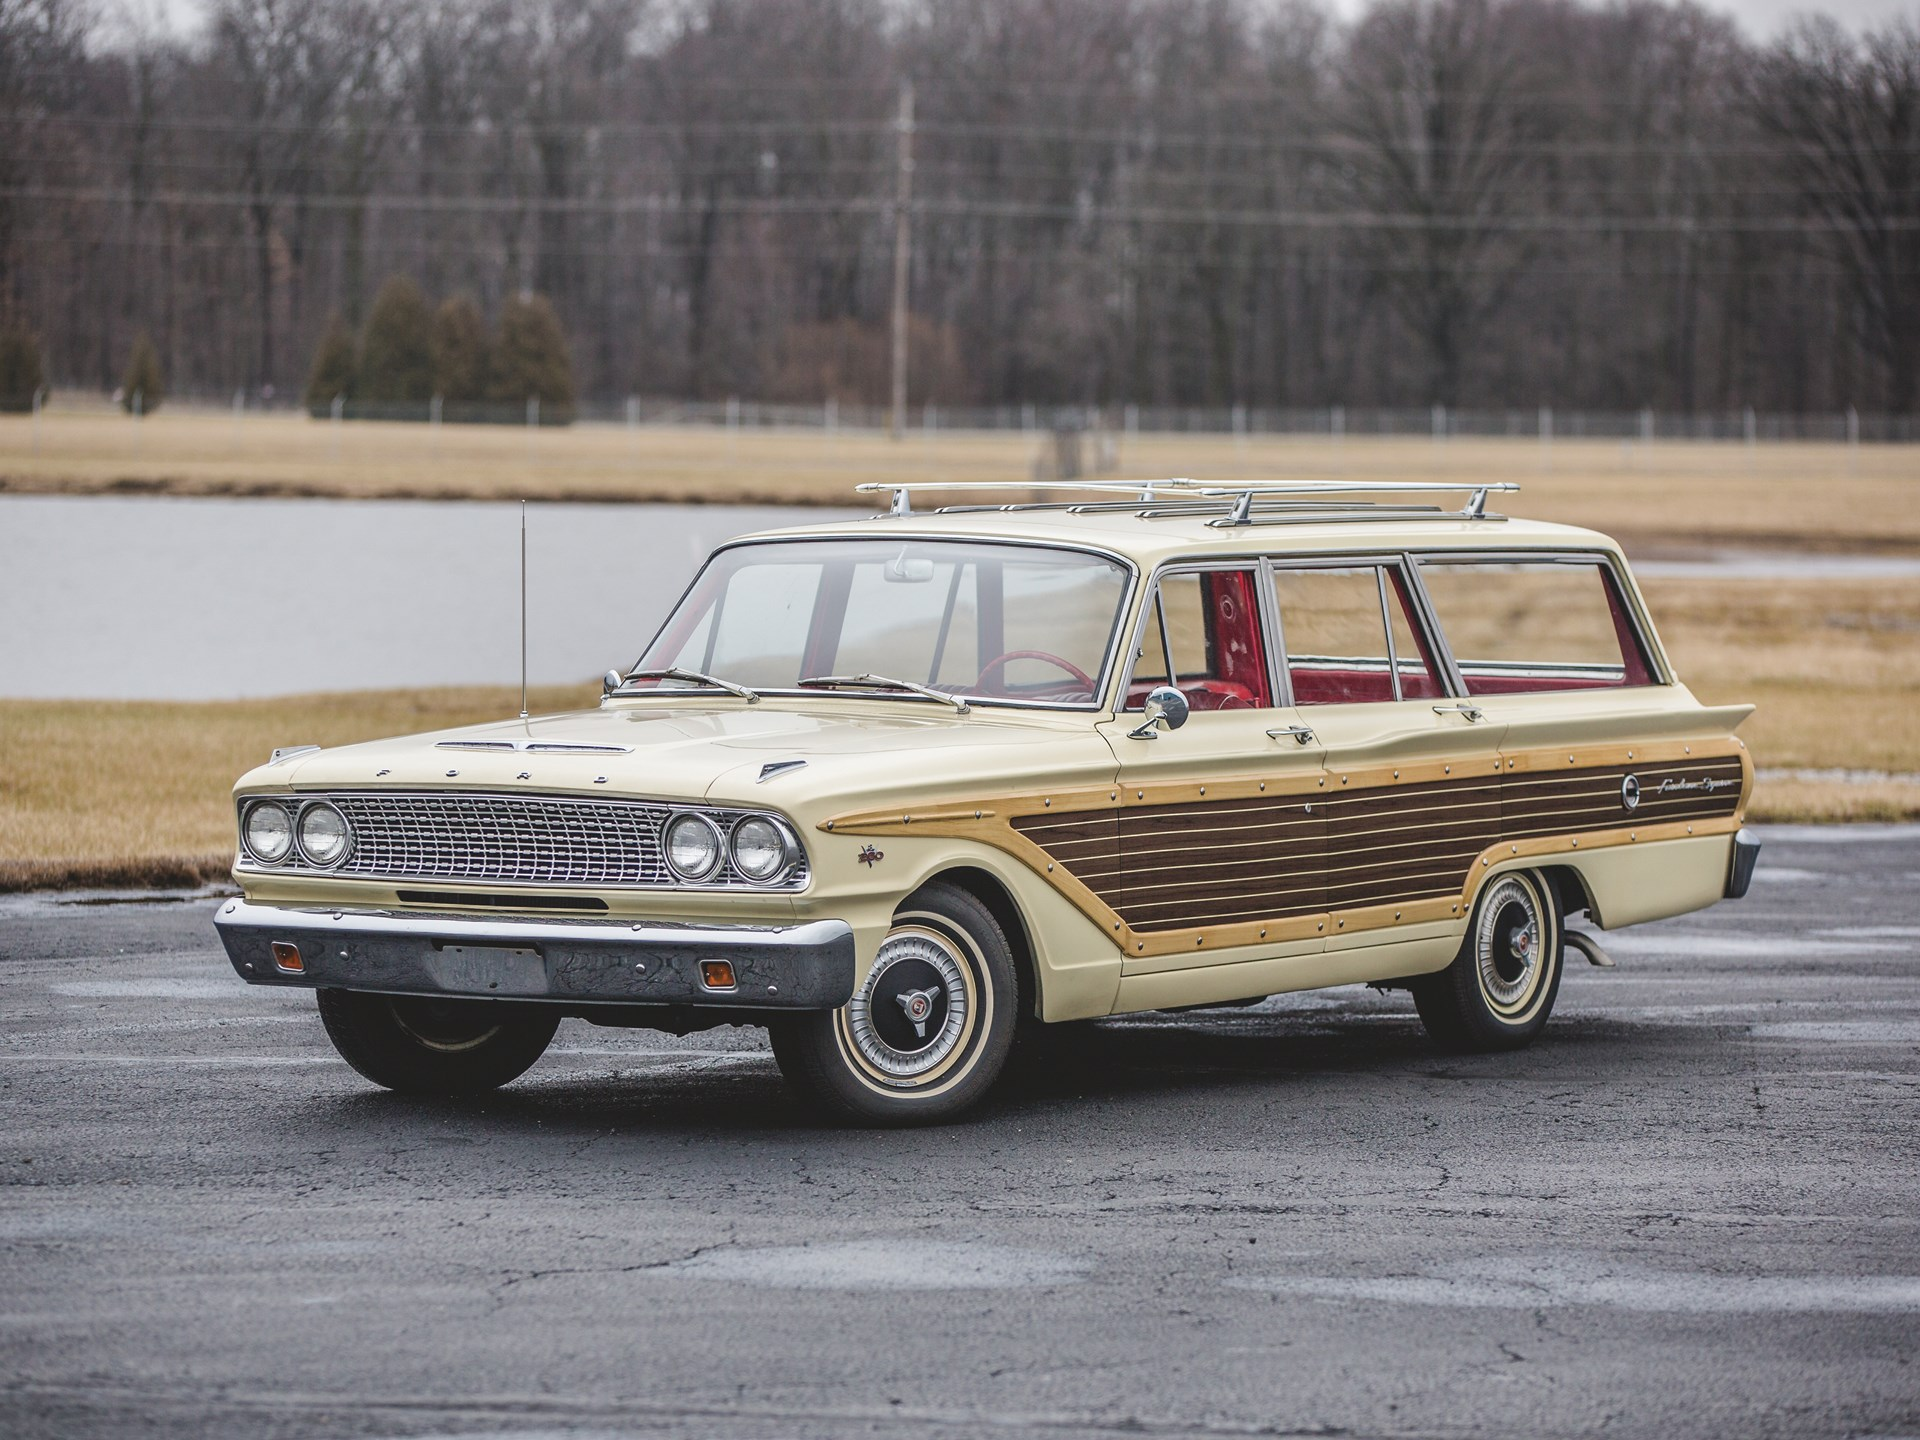 RM Sotheby's - 1963 Ford Fairlane 500 Squire | Auburn Spring